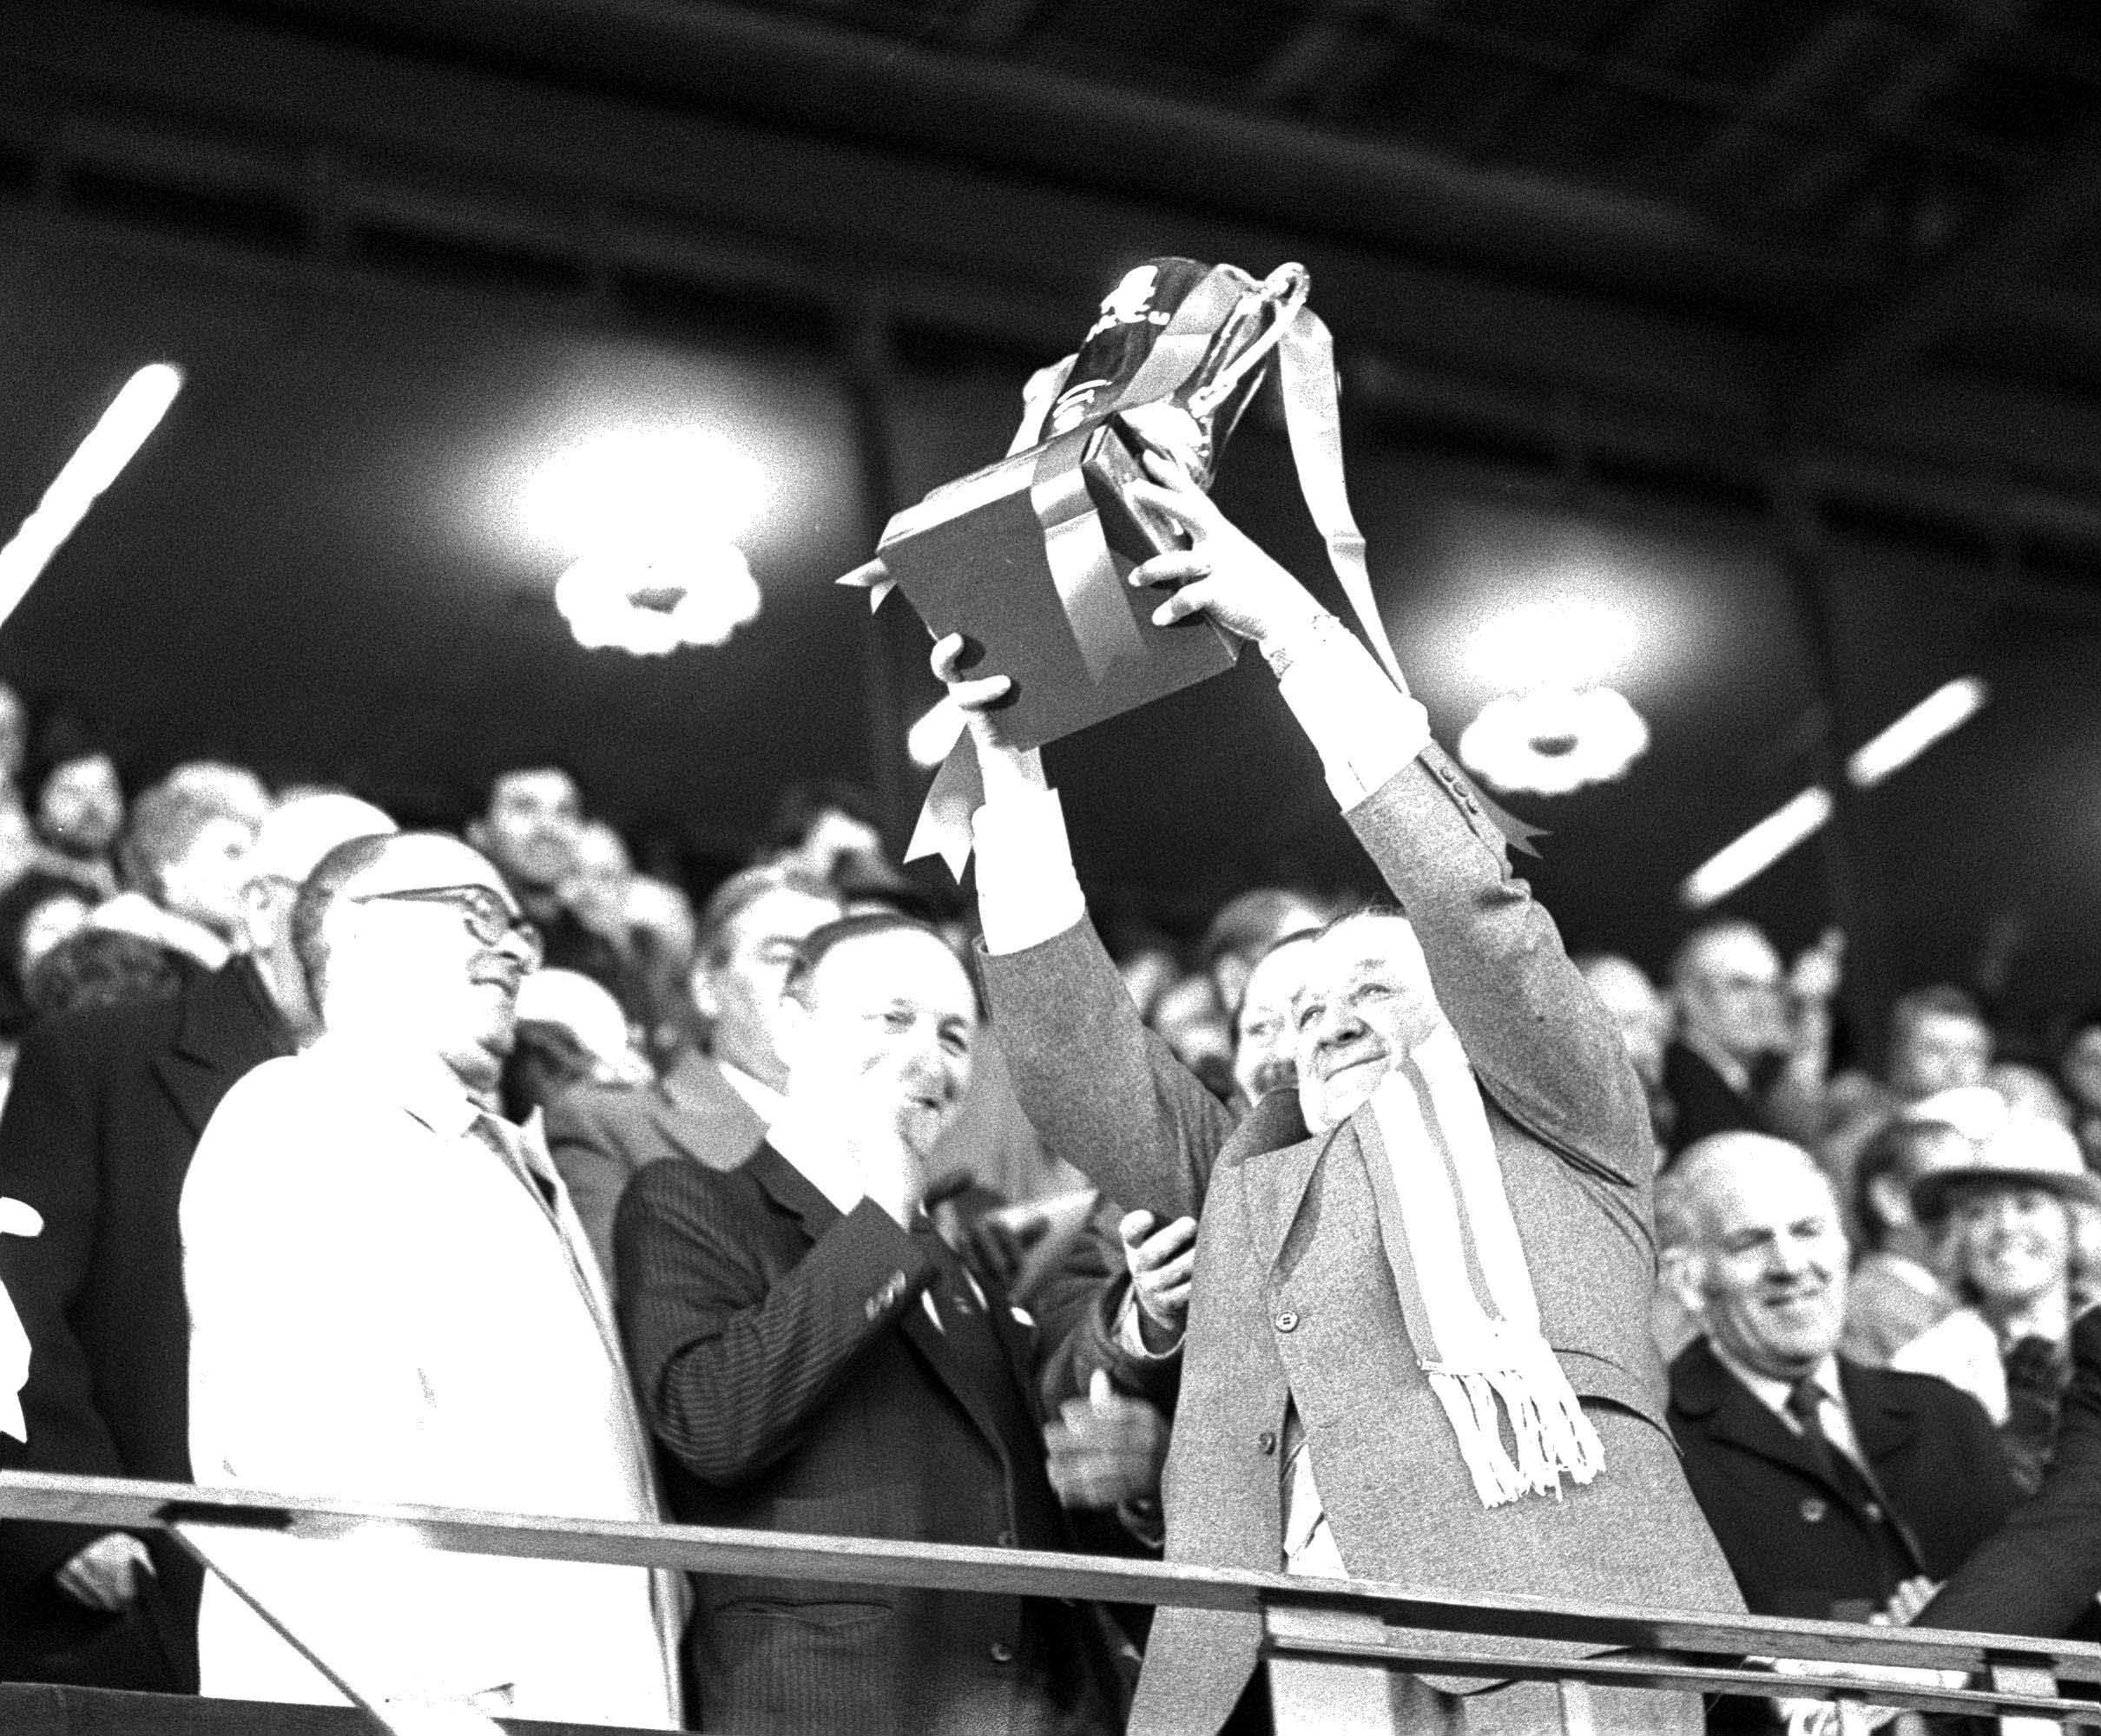 LIVERPOOL #ONTHISDAY 26/3/15: PAISLEY MILKS IT AT WEMBLEY